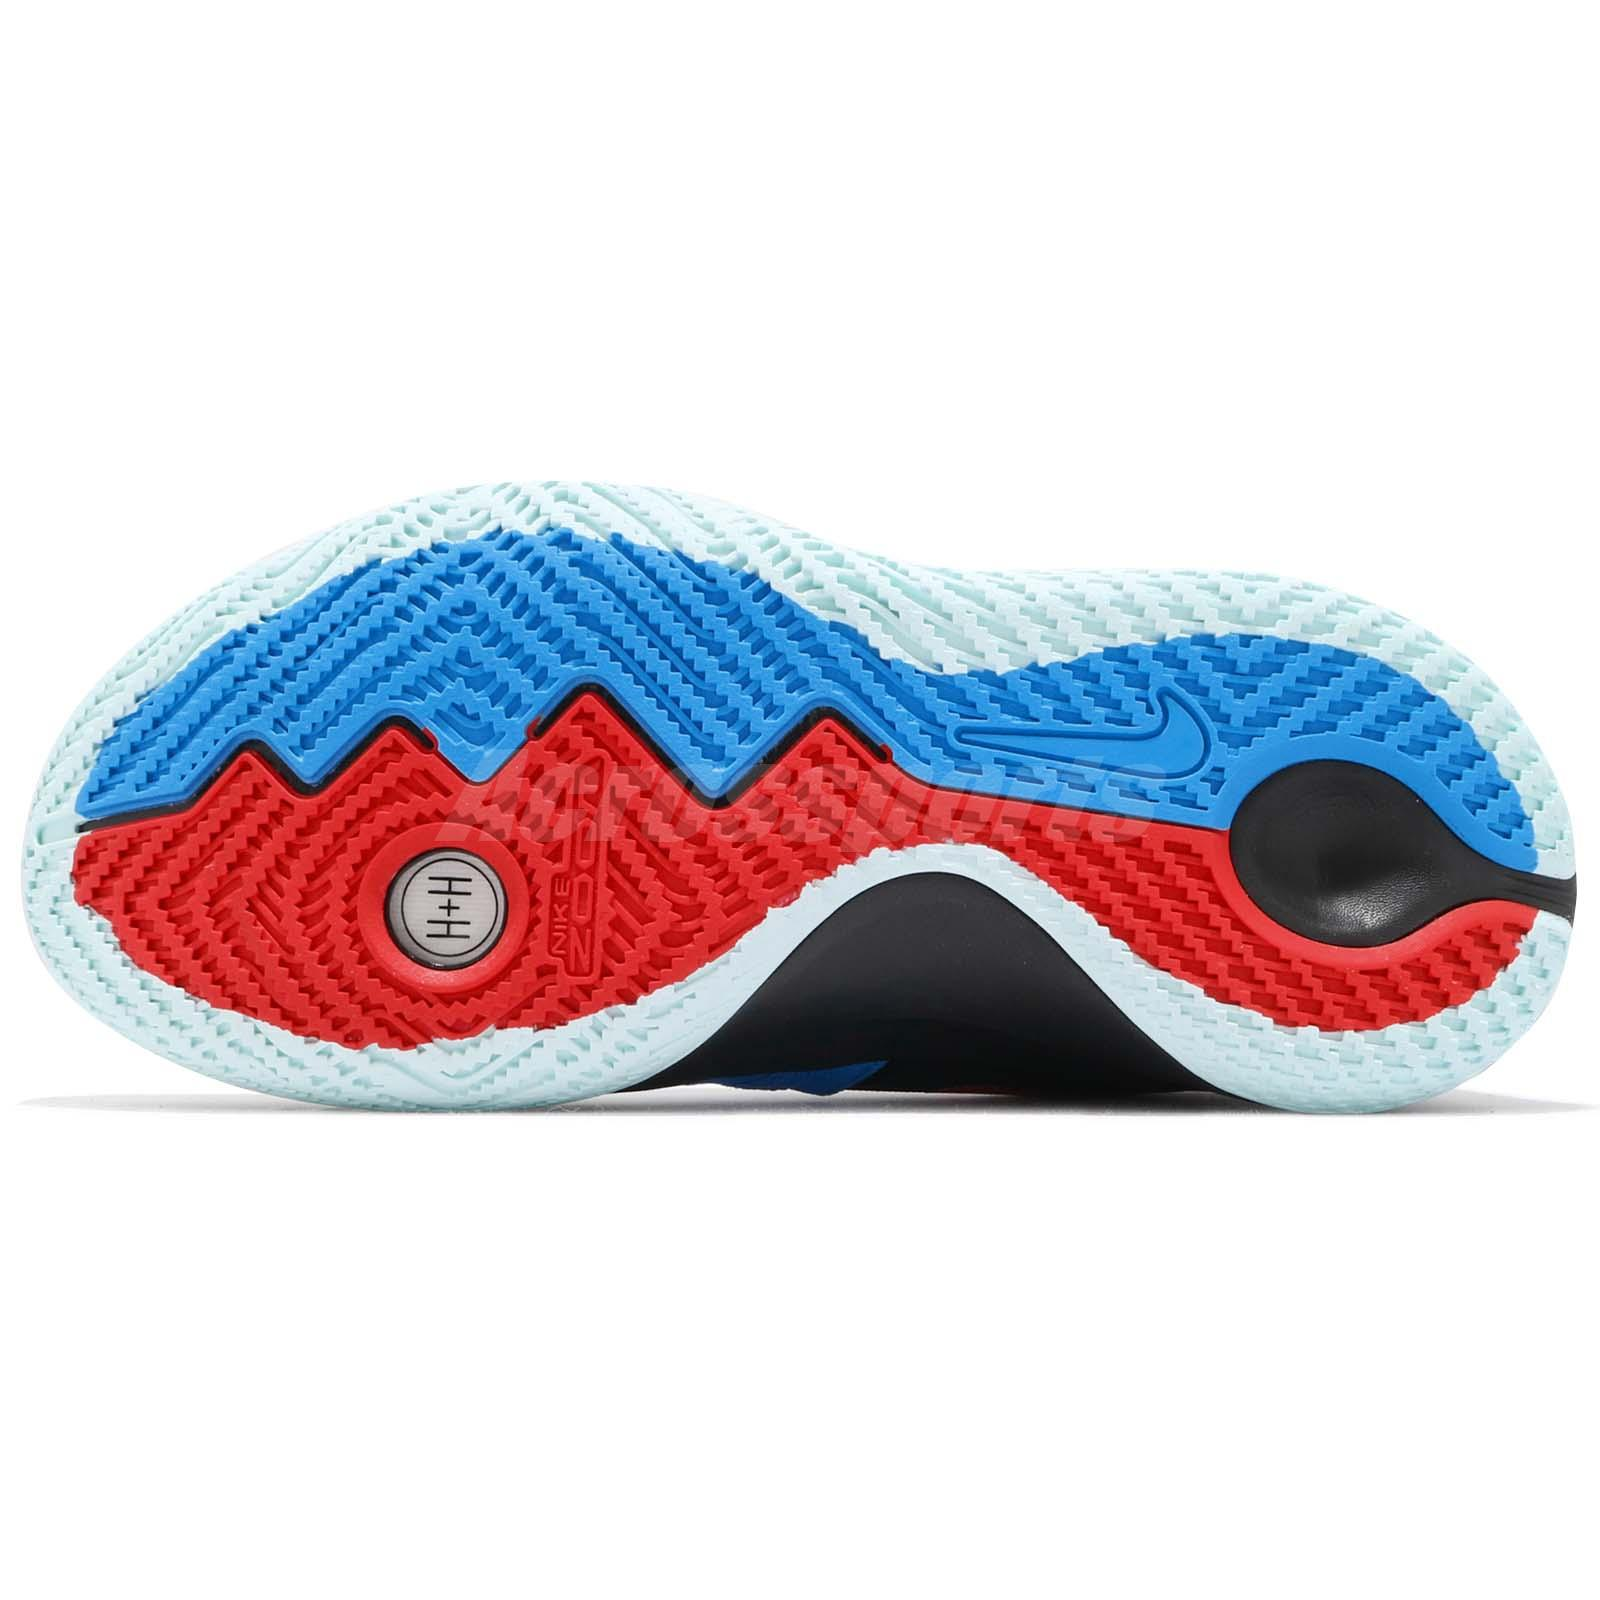 Nike Kyrie Flytrap Ep Irving Black Blue Red Men Basketball Shoes Aj1935-002 At All Costs Men's Shoes